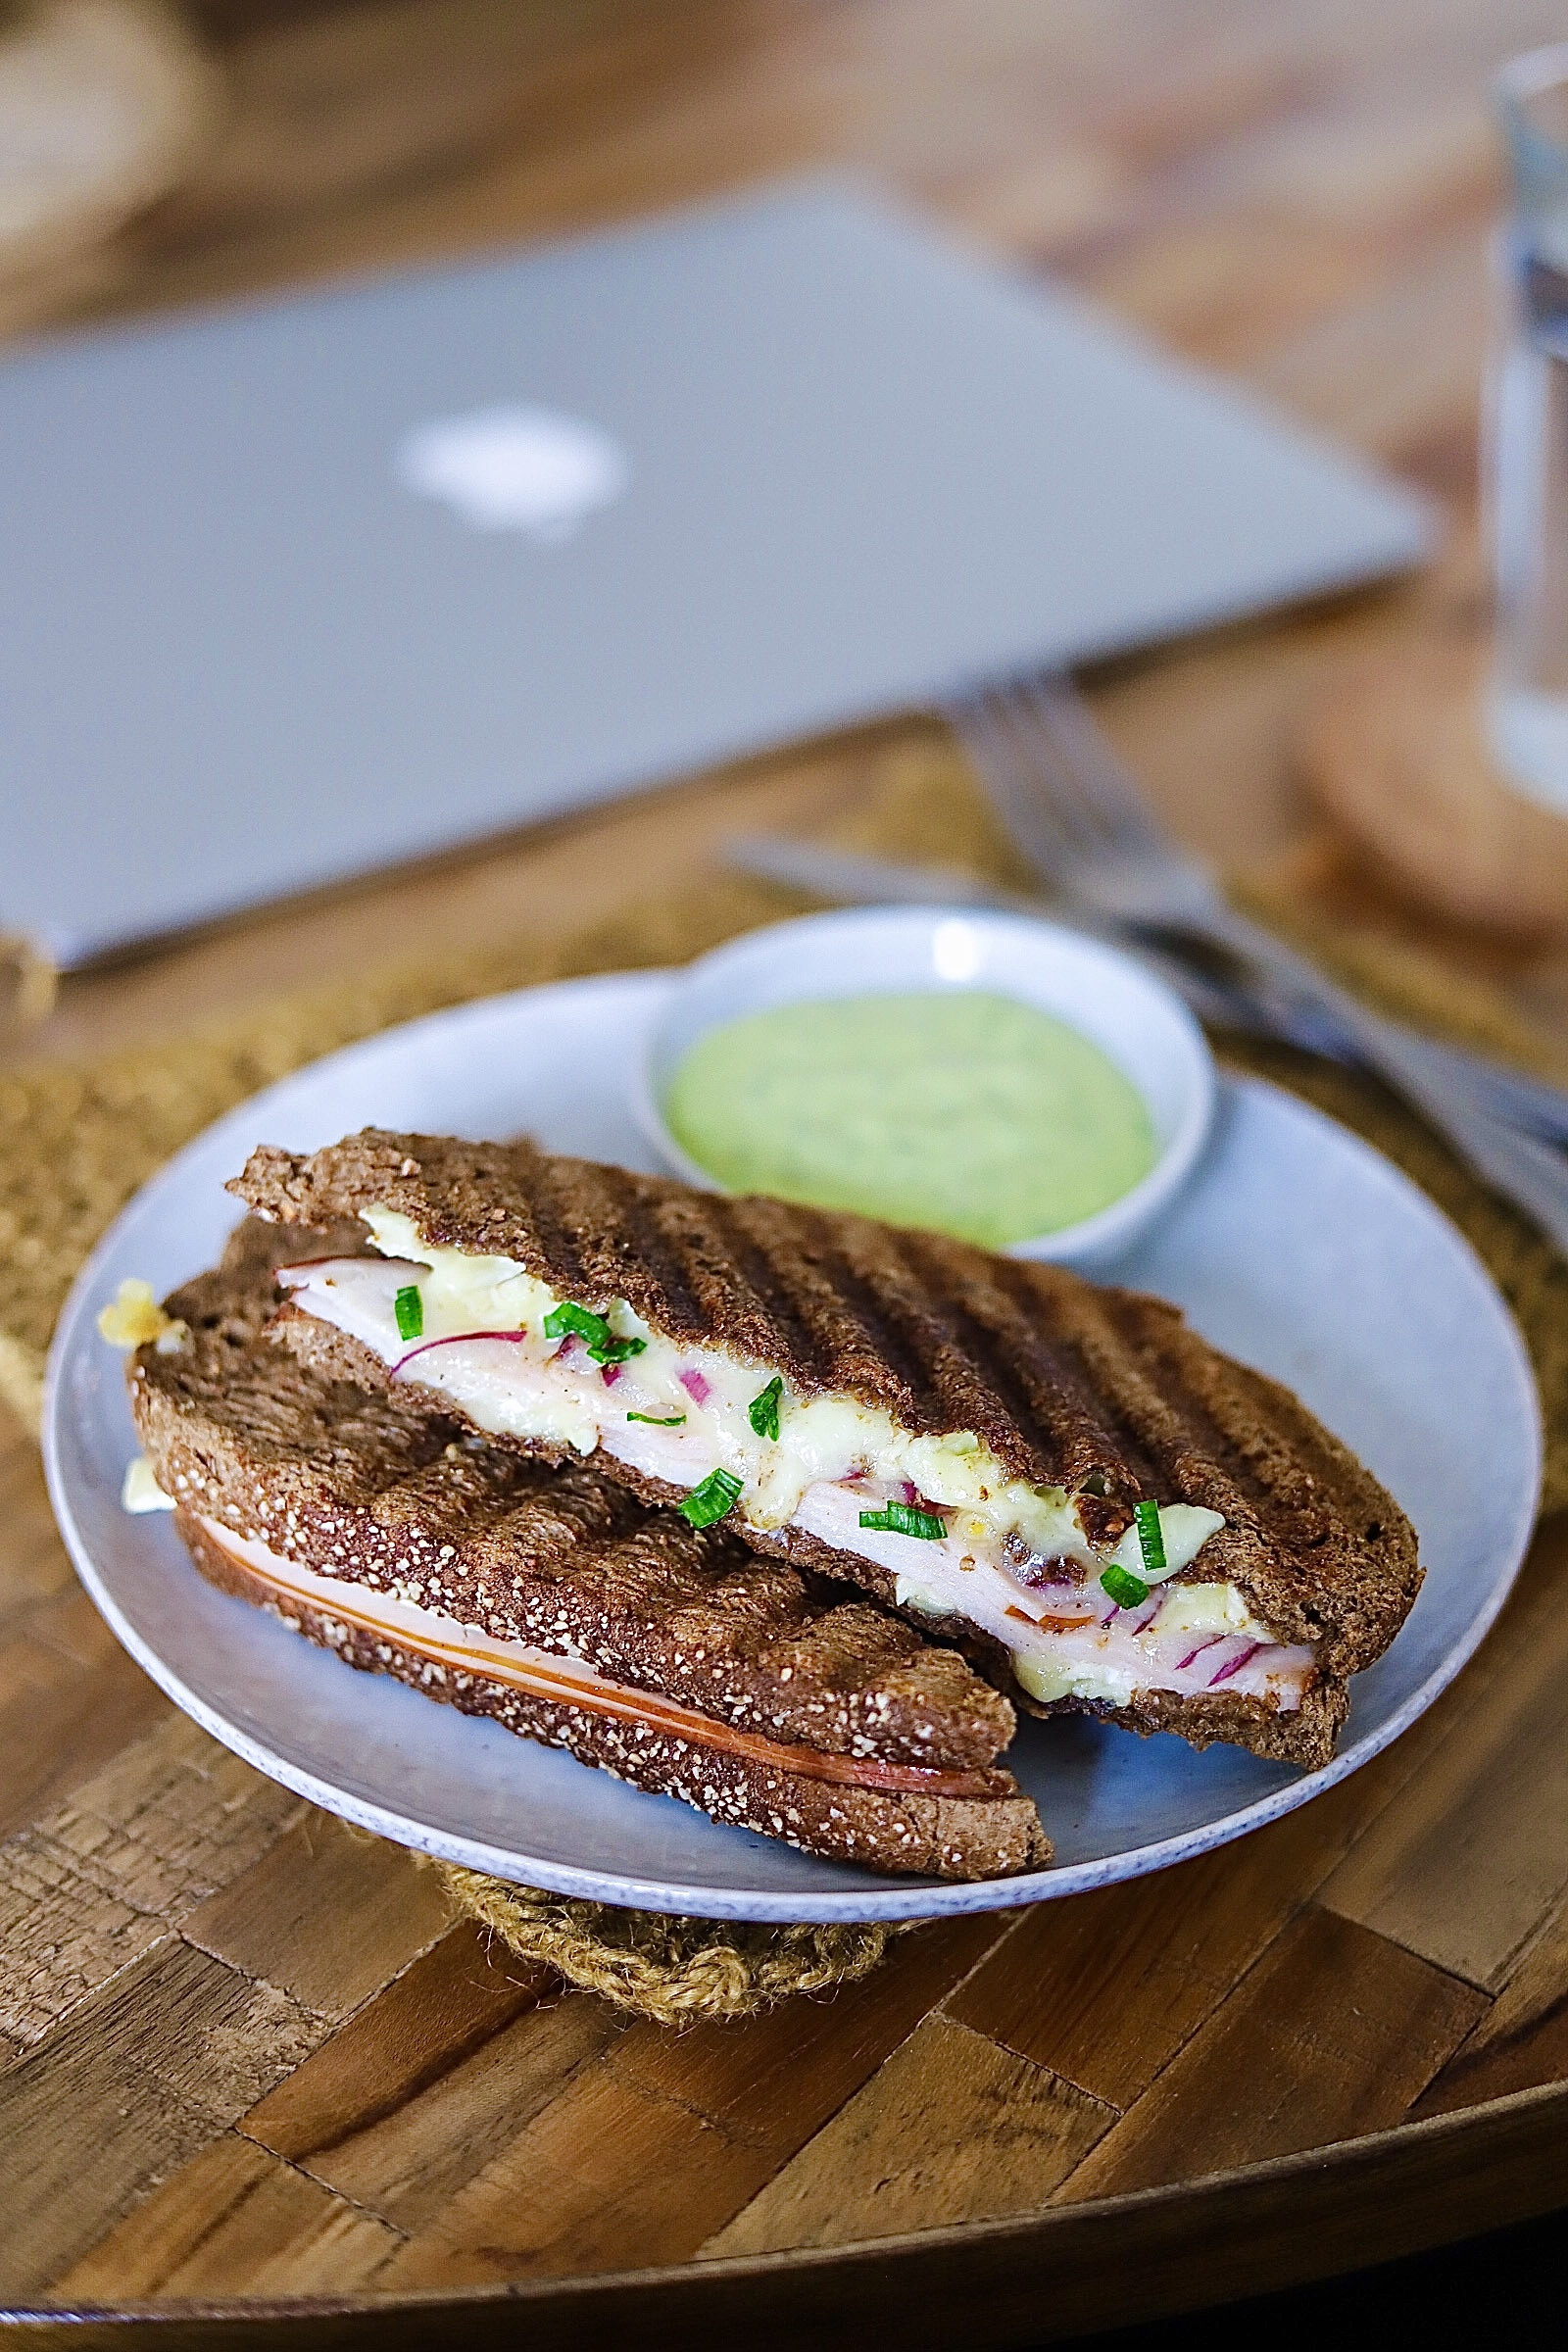 Grilled sandwich are always a satisfying to eat as lunch. What about you?